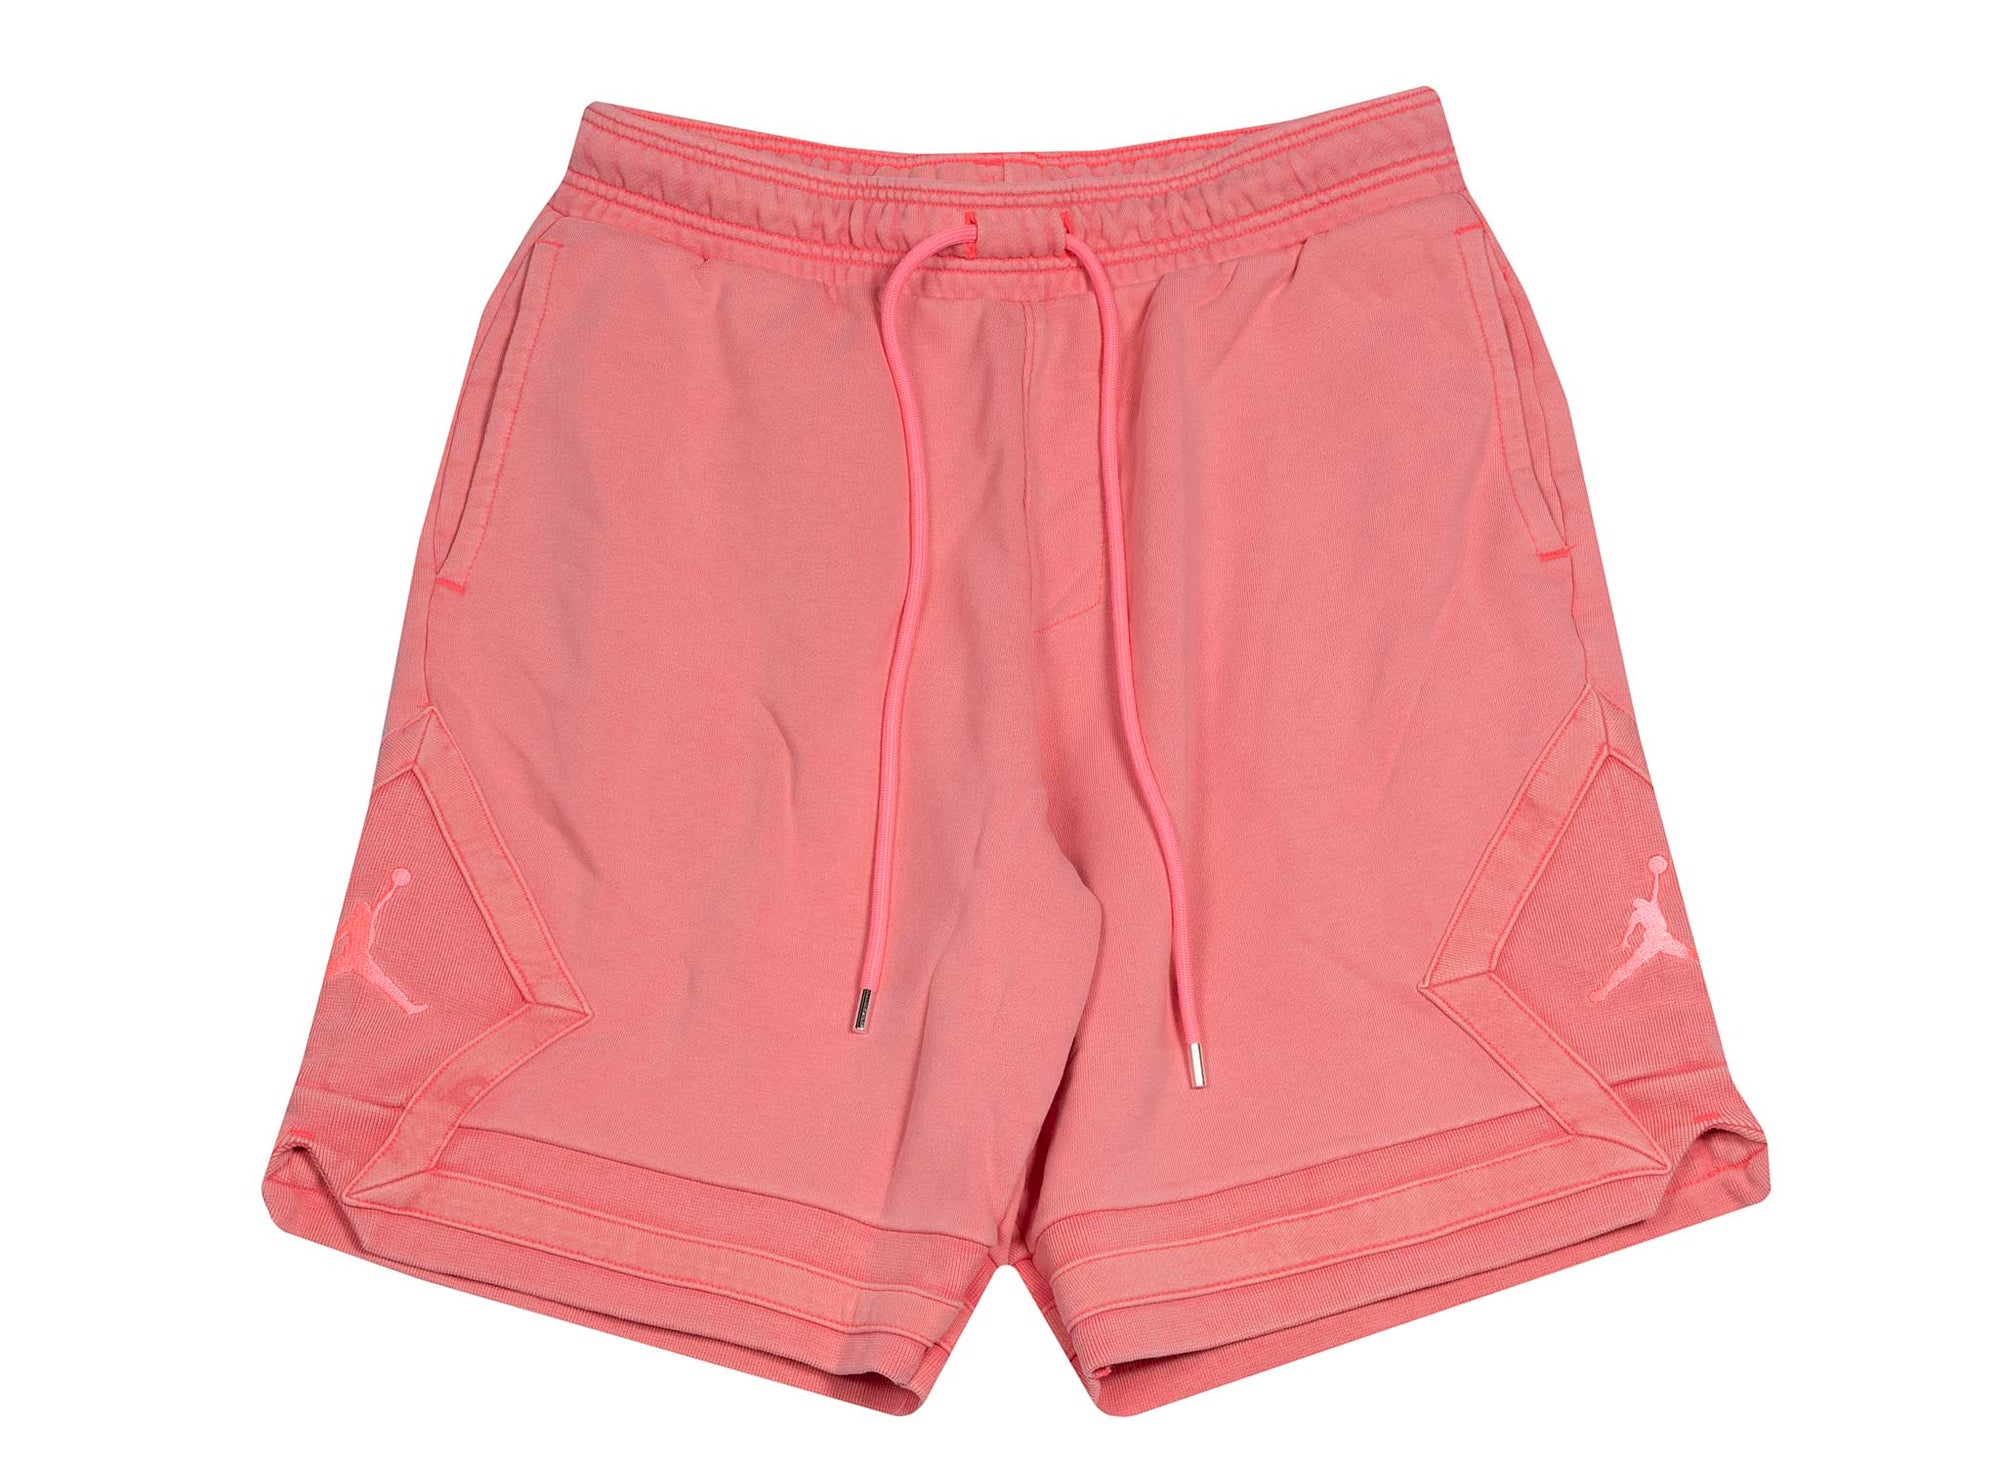 M J WINGS WASH FLC SHORT DIGITAL PINK